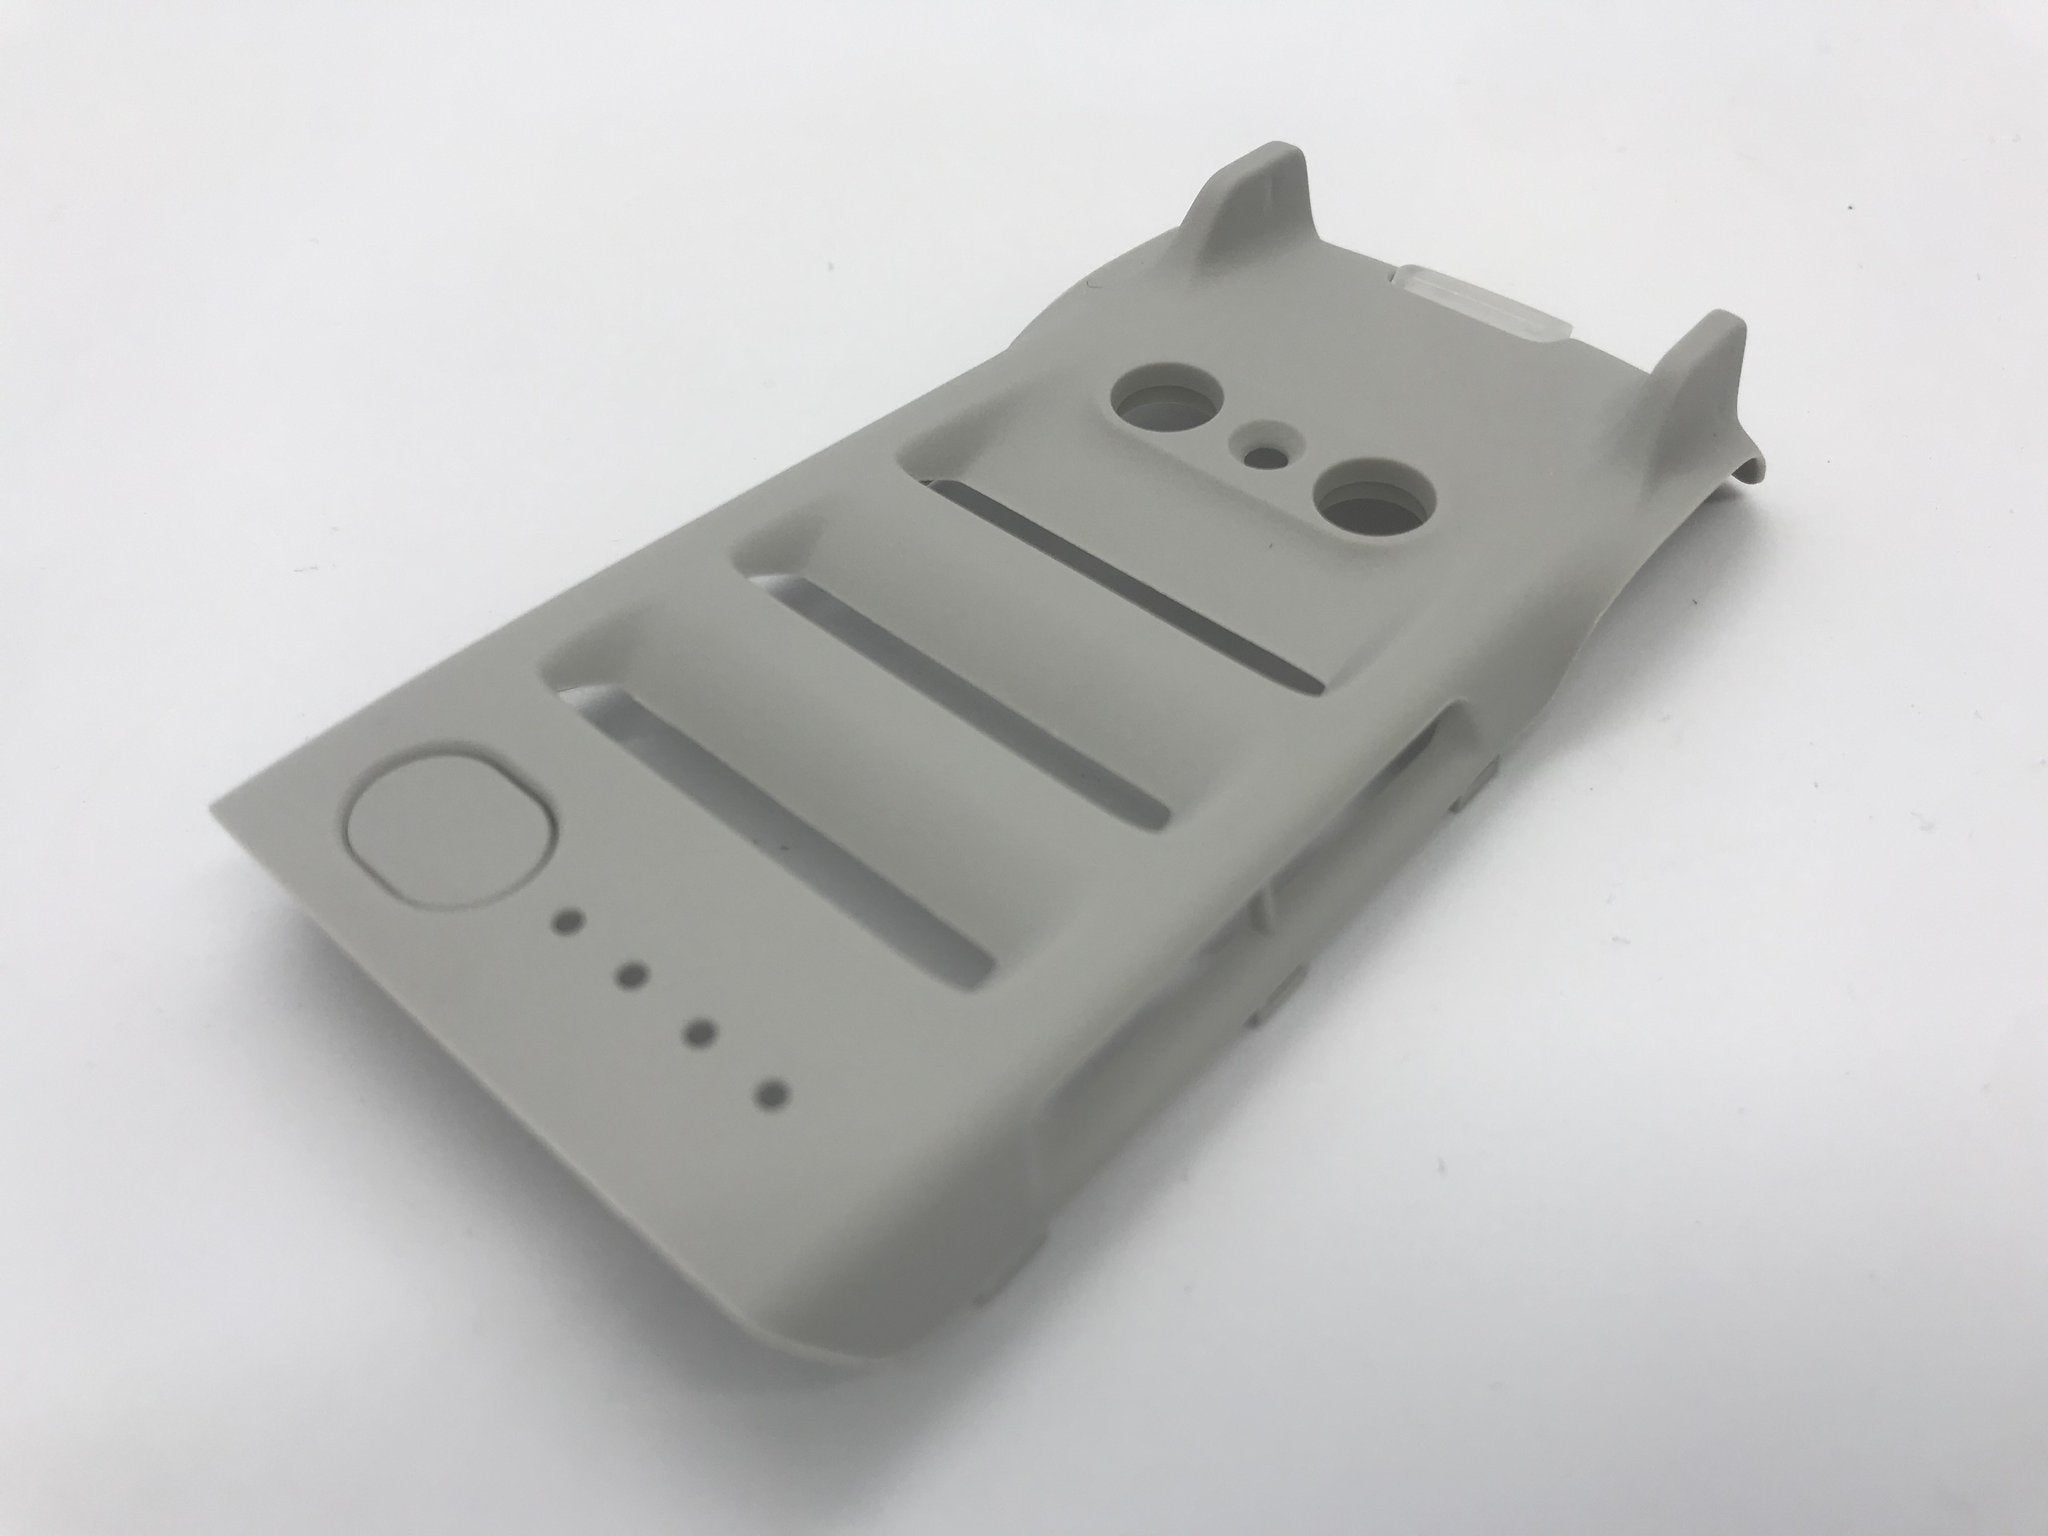 Mavic Mini Lower Cover Module